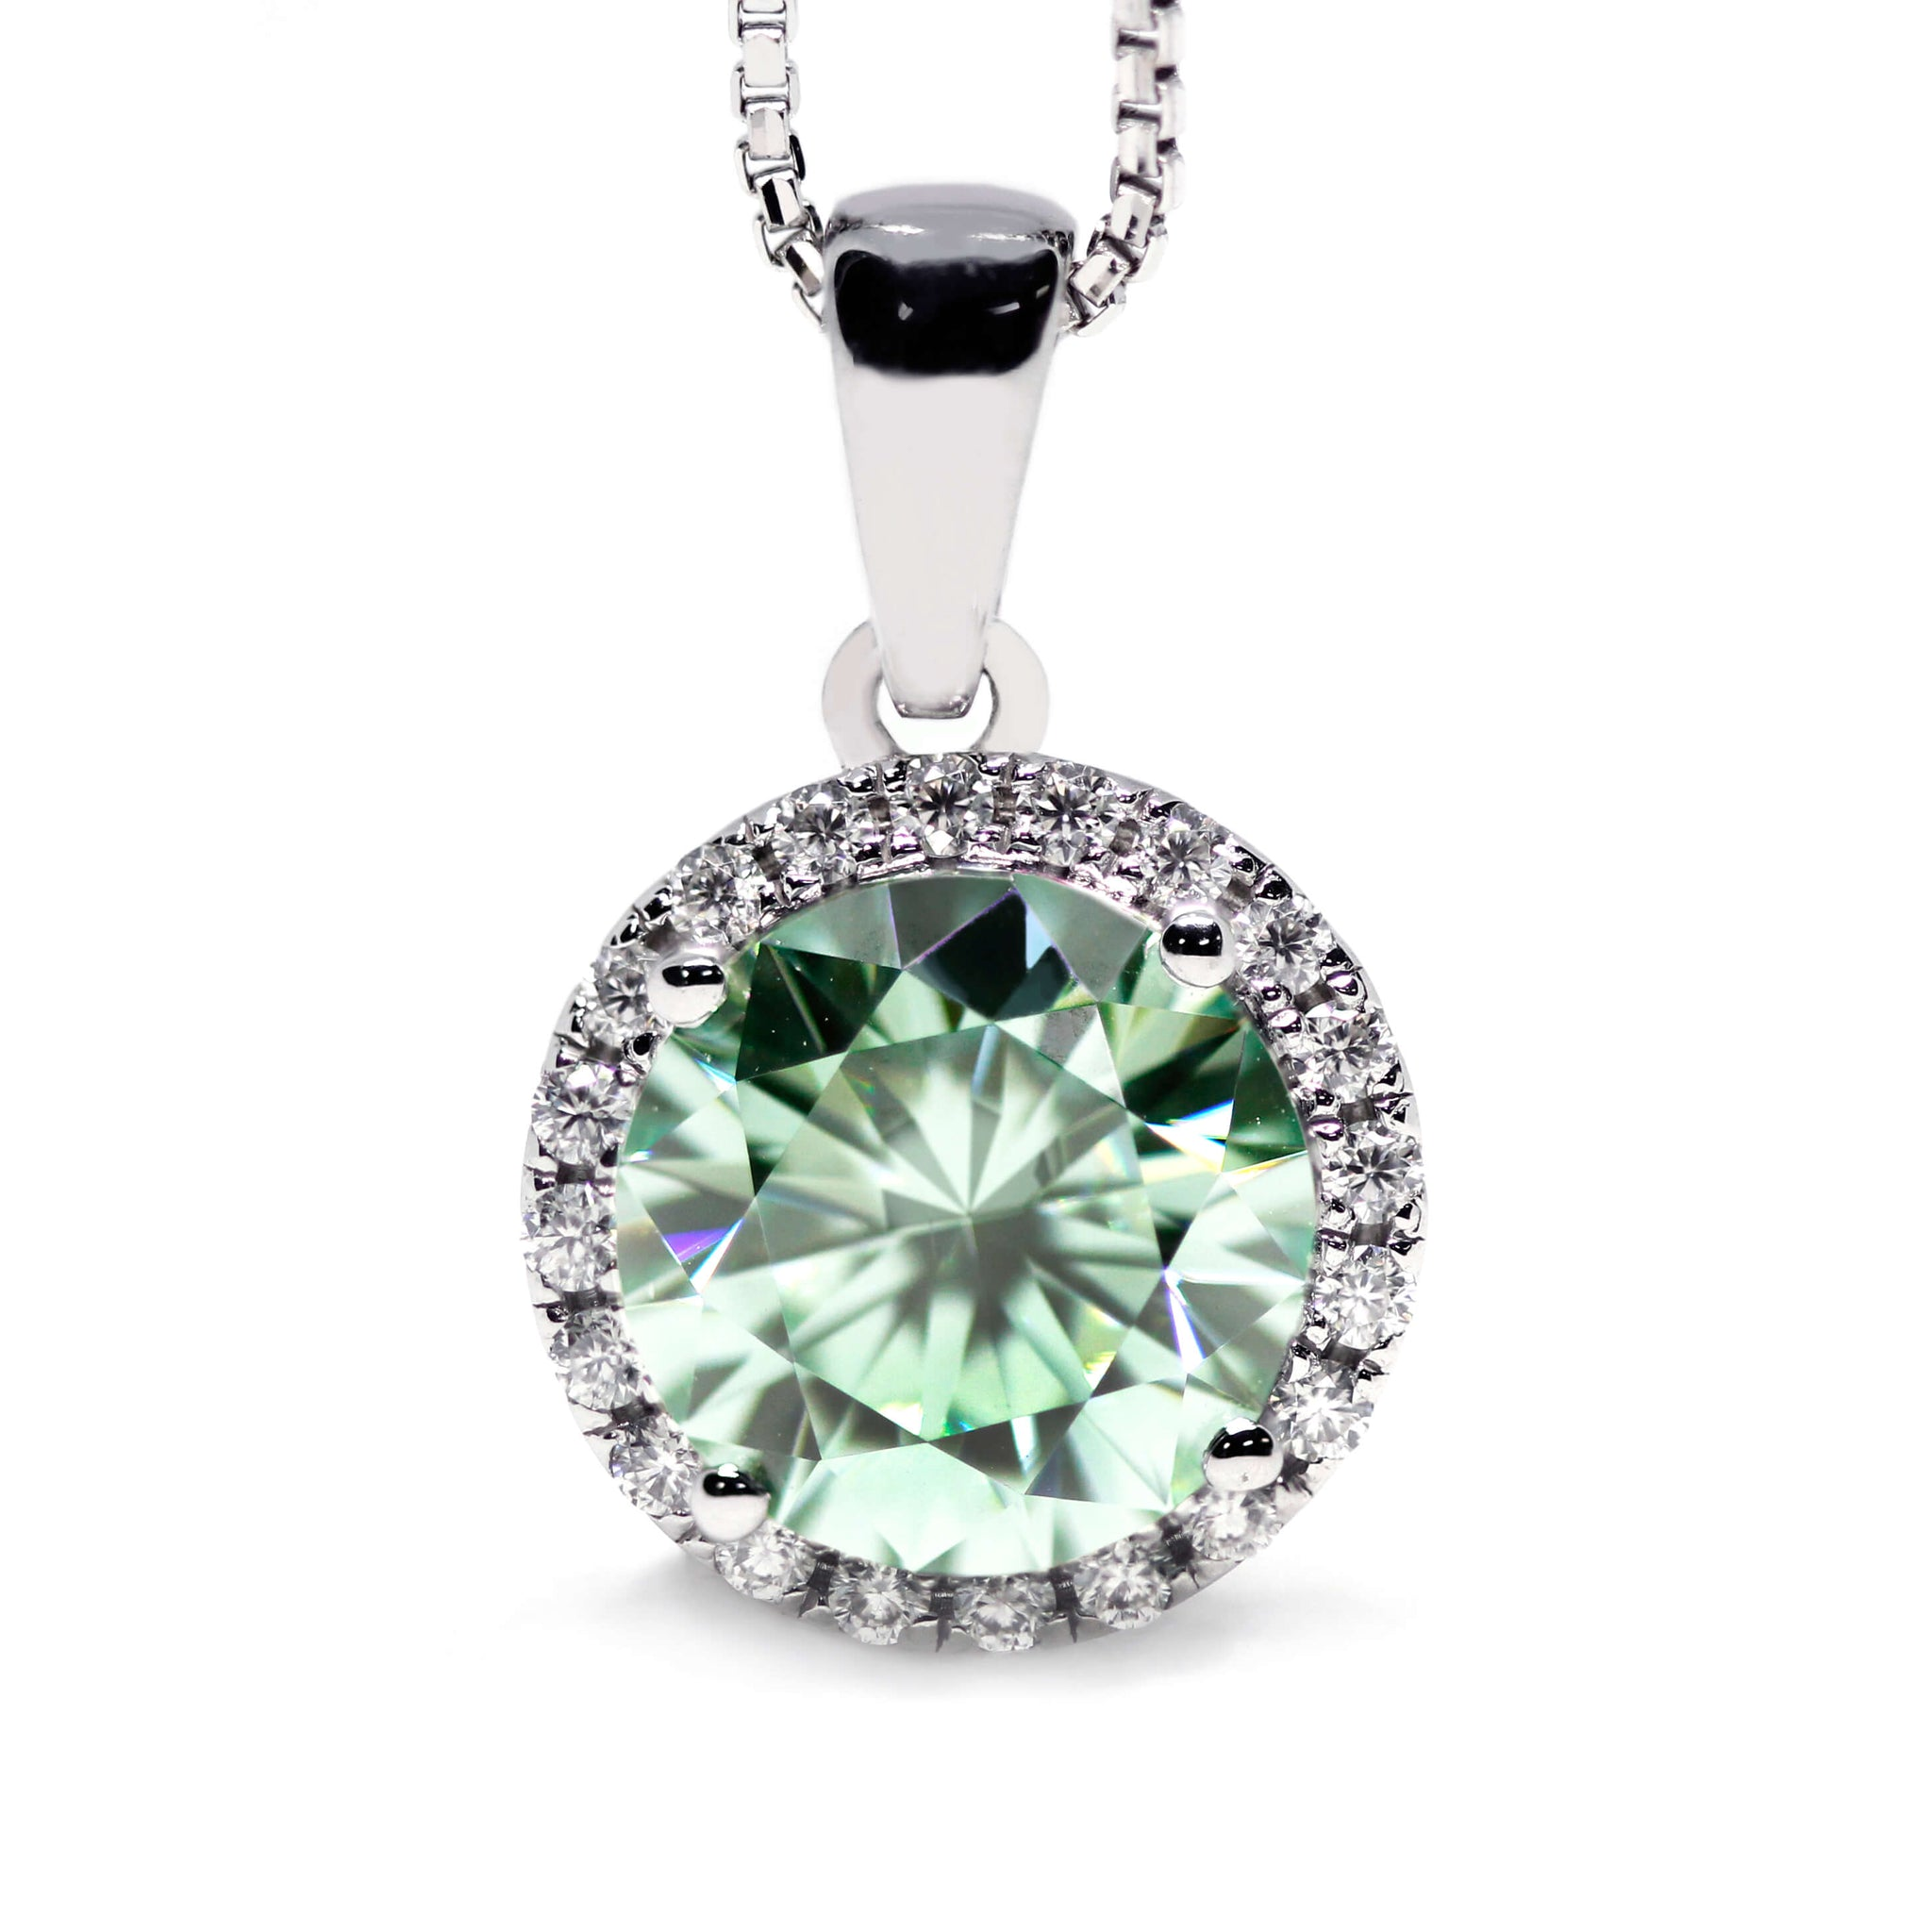 2 Carat Mint Green Moissanite Round Halo 18K White Gold Pendant